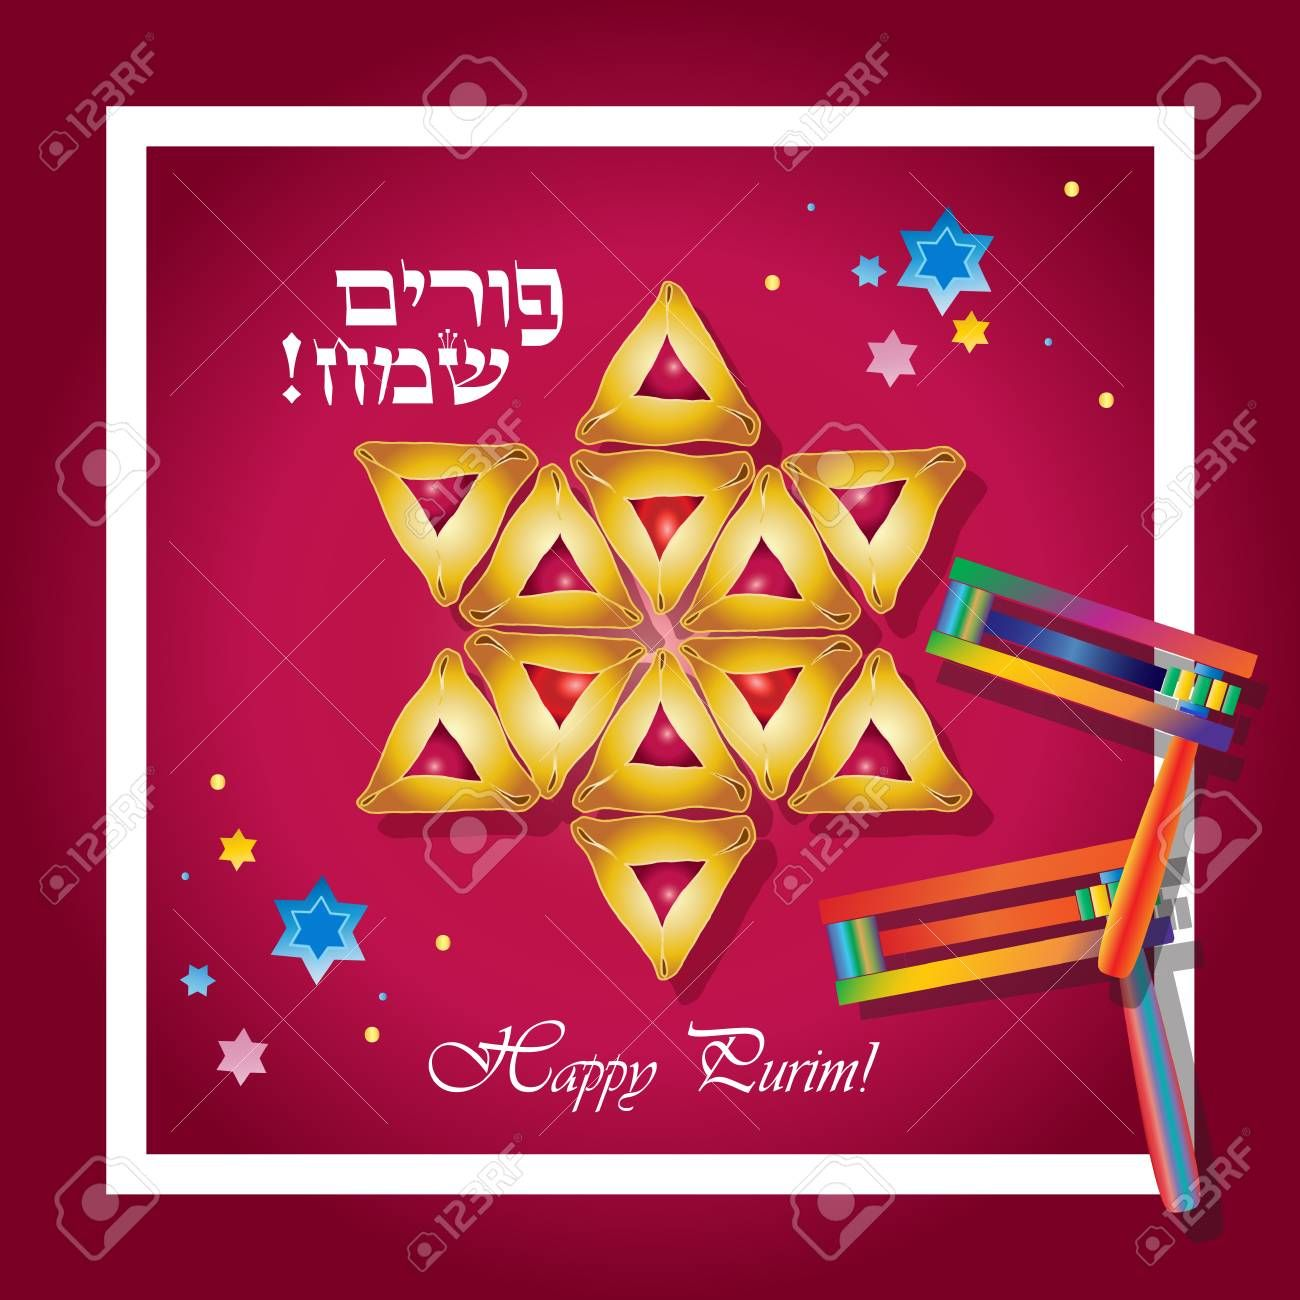 Happy Purim Greeting Card Translation From Hebrew Happy Purim